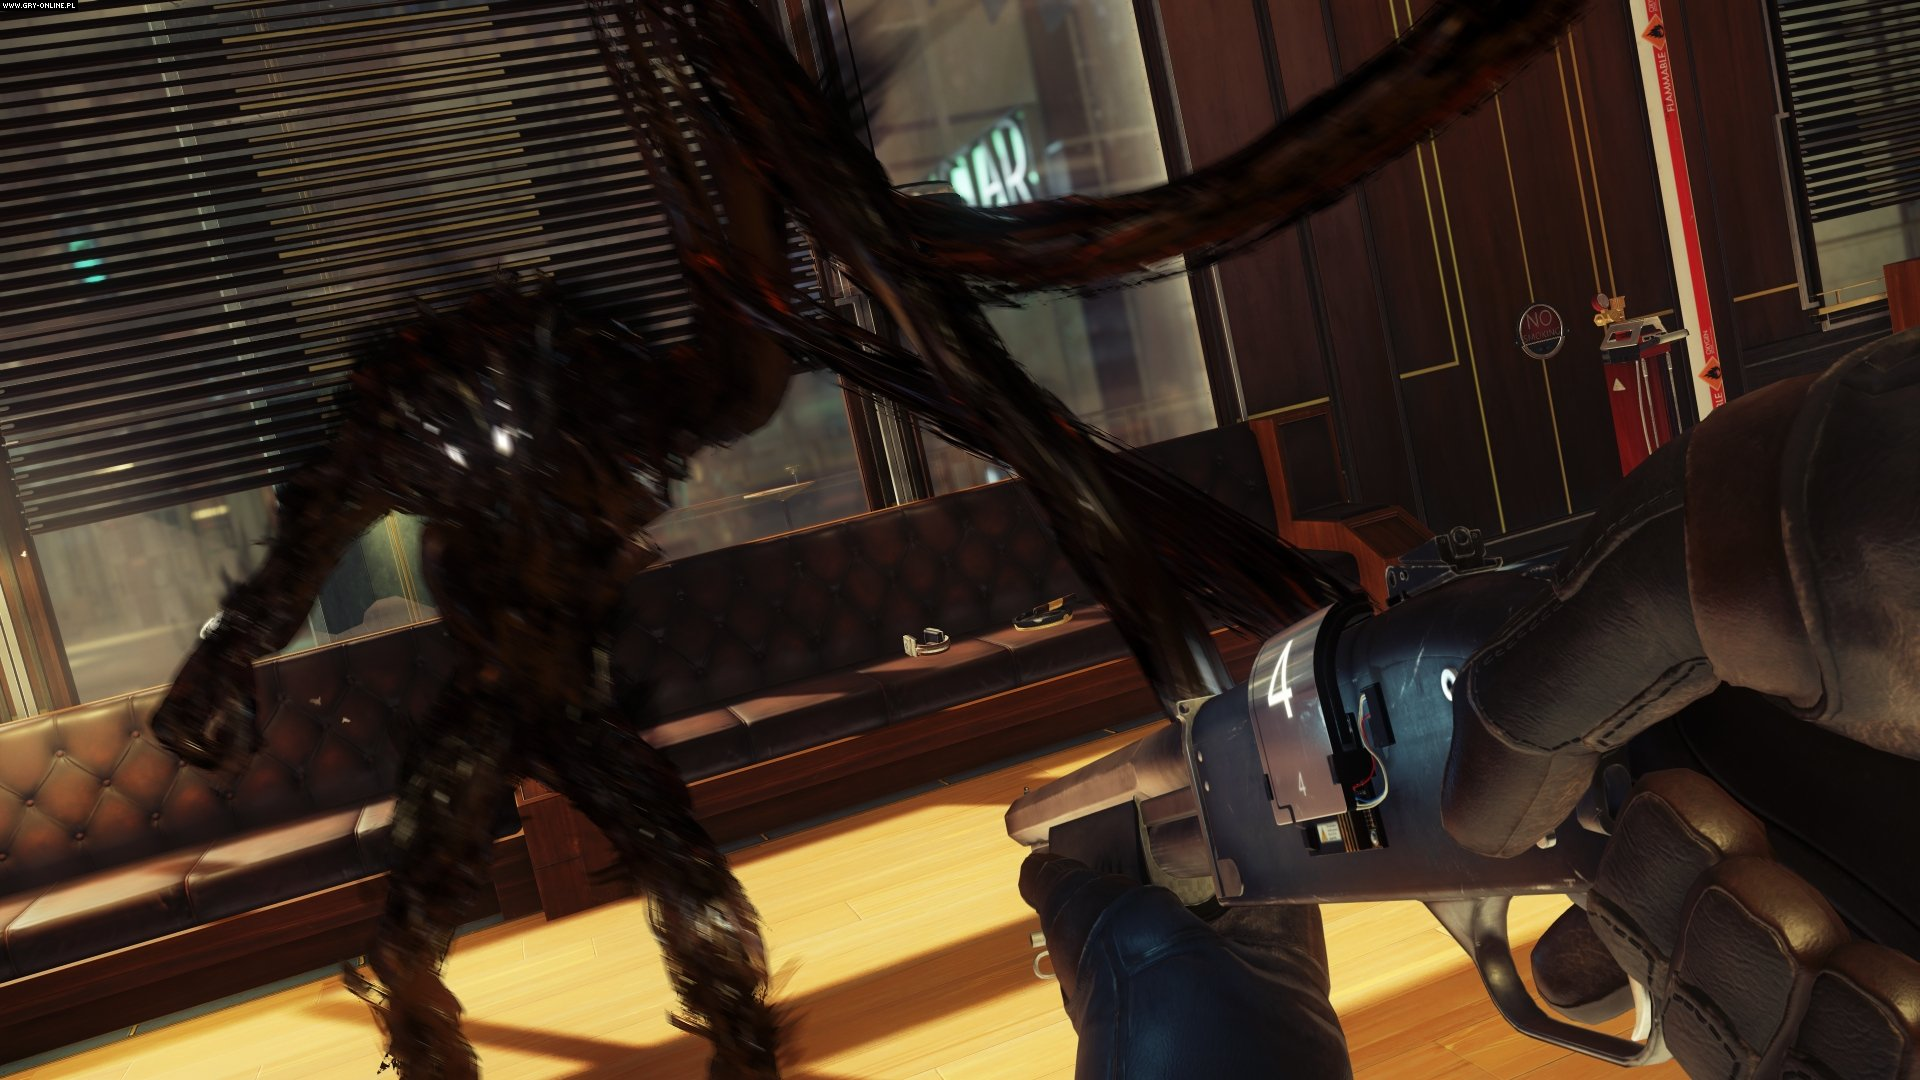 Prey PC, PS4, XONE Games Image 8/90, Arkane Studios, Bethesda Softworks